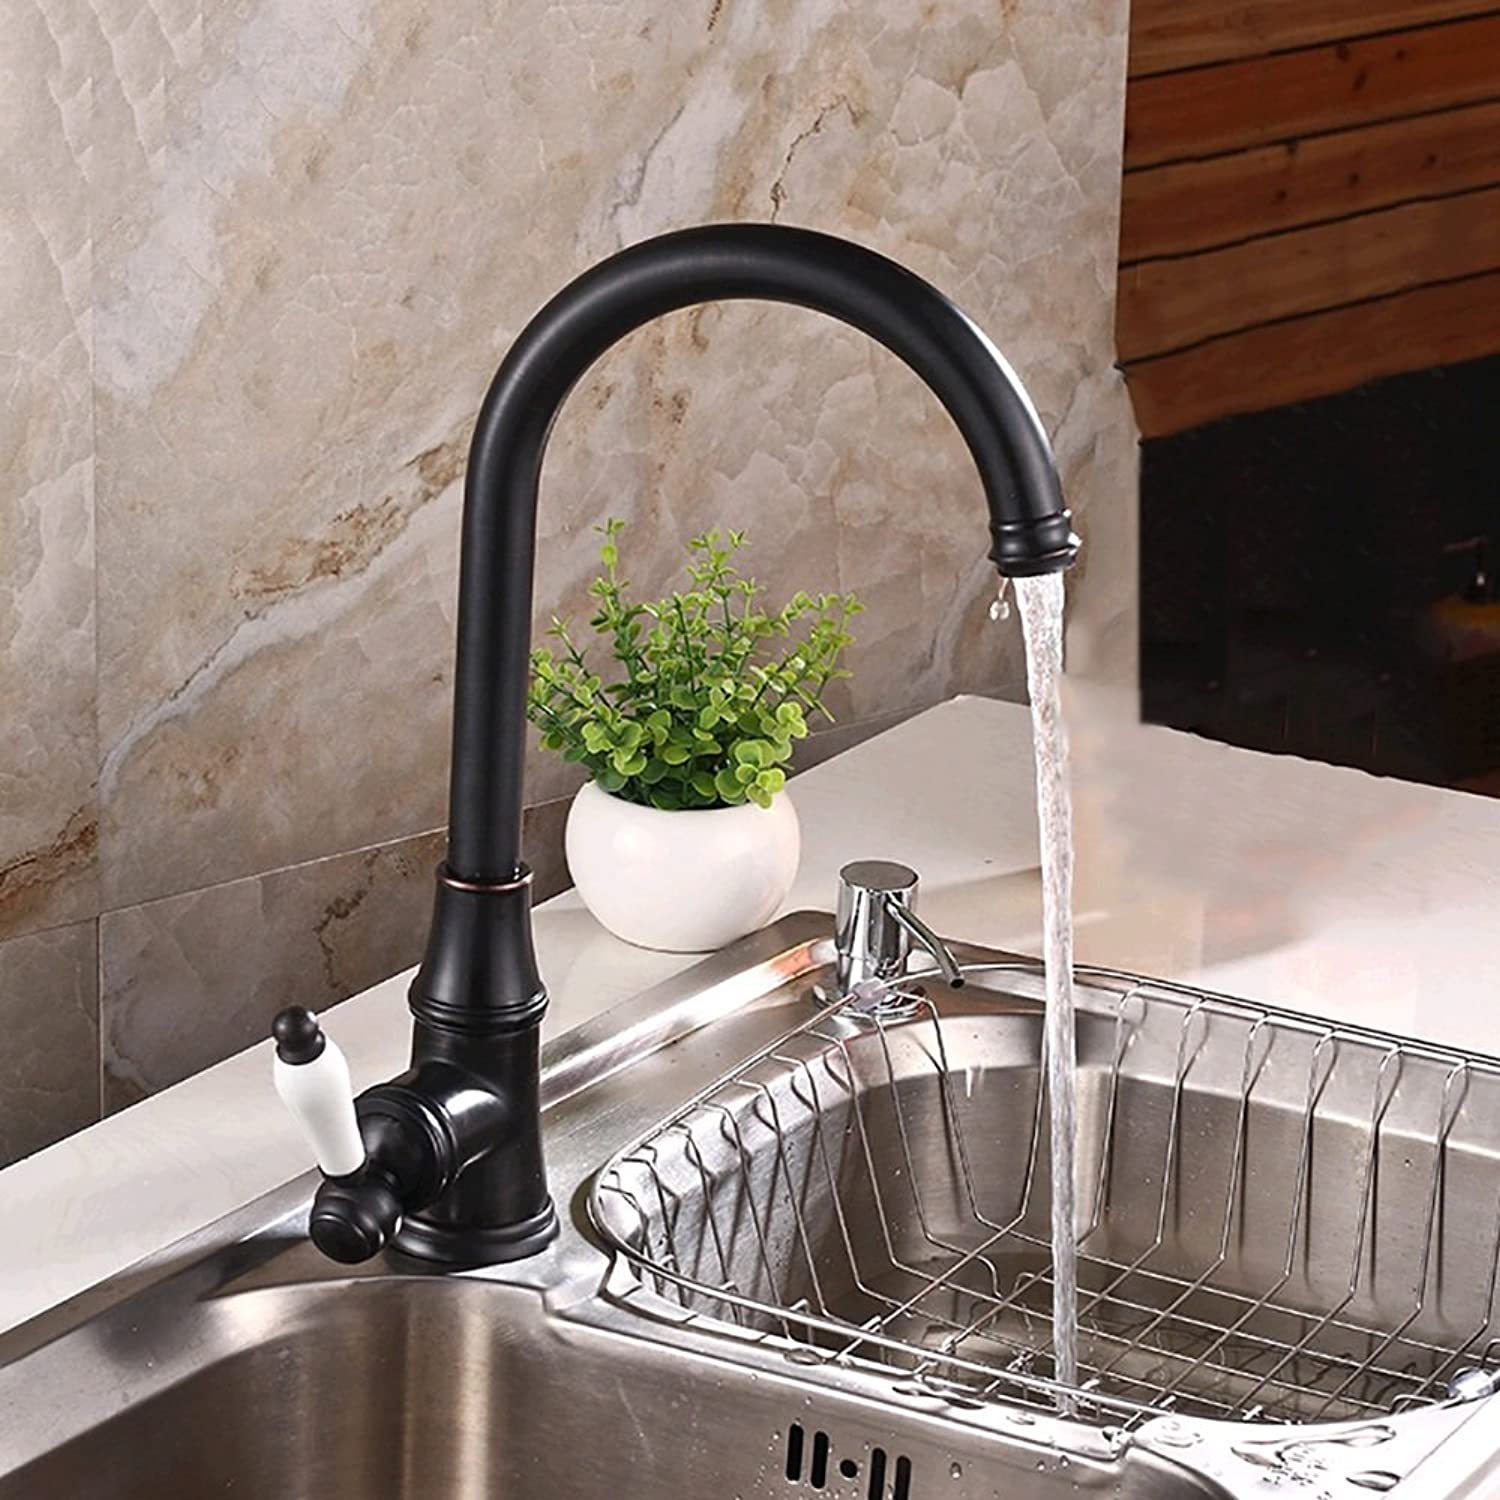 Lingyun Faucet- Full Copper Black Bronze Sink Faucet Can Be redated On The Basin Pot Hot And Cold Water Kitchen Faucet